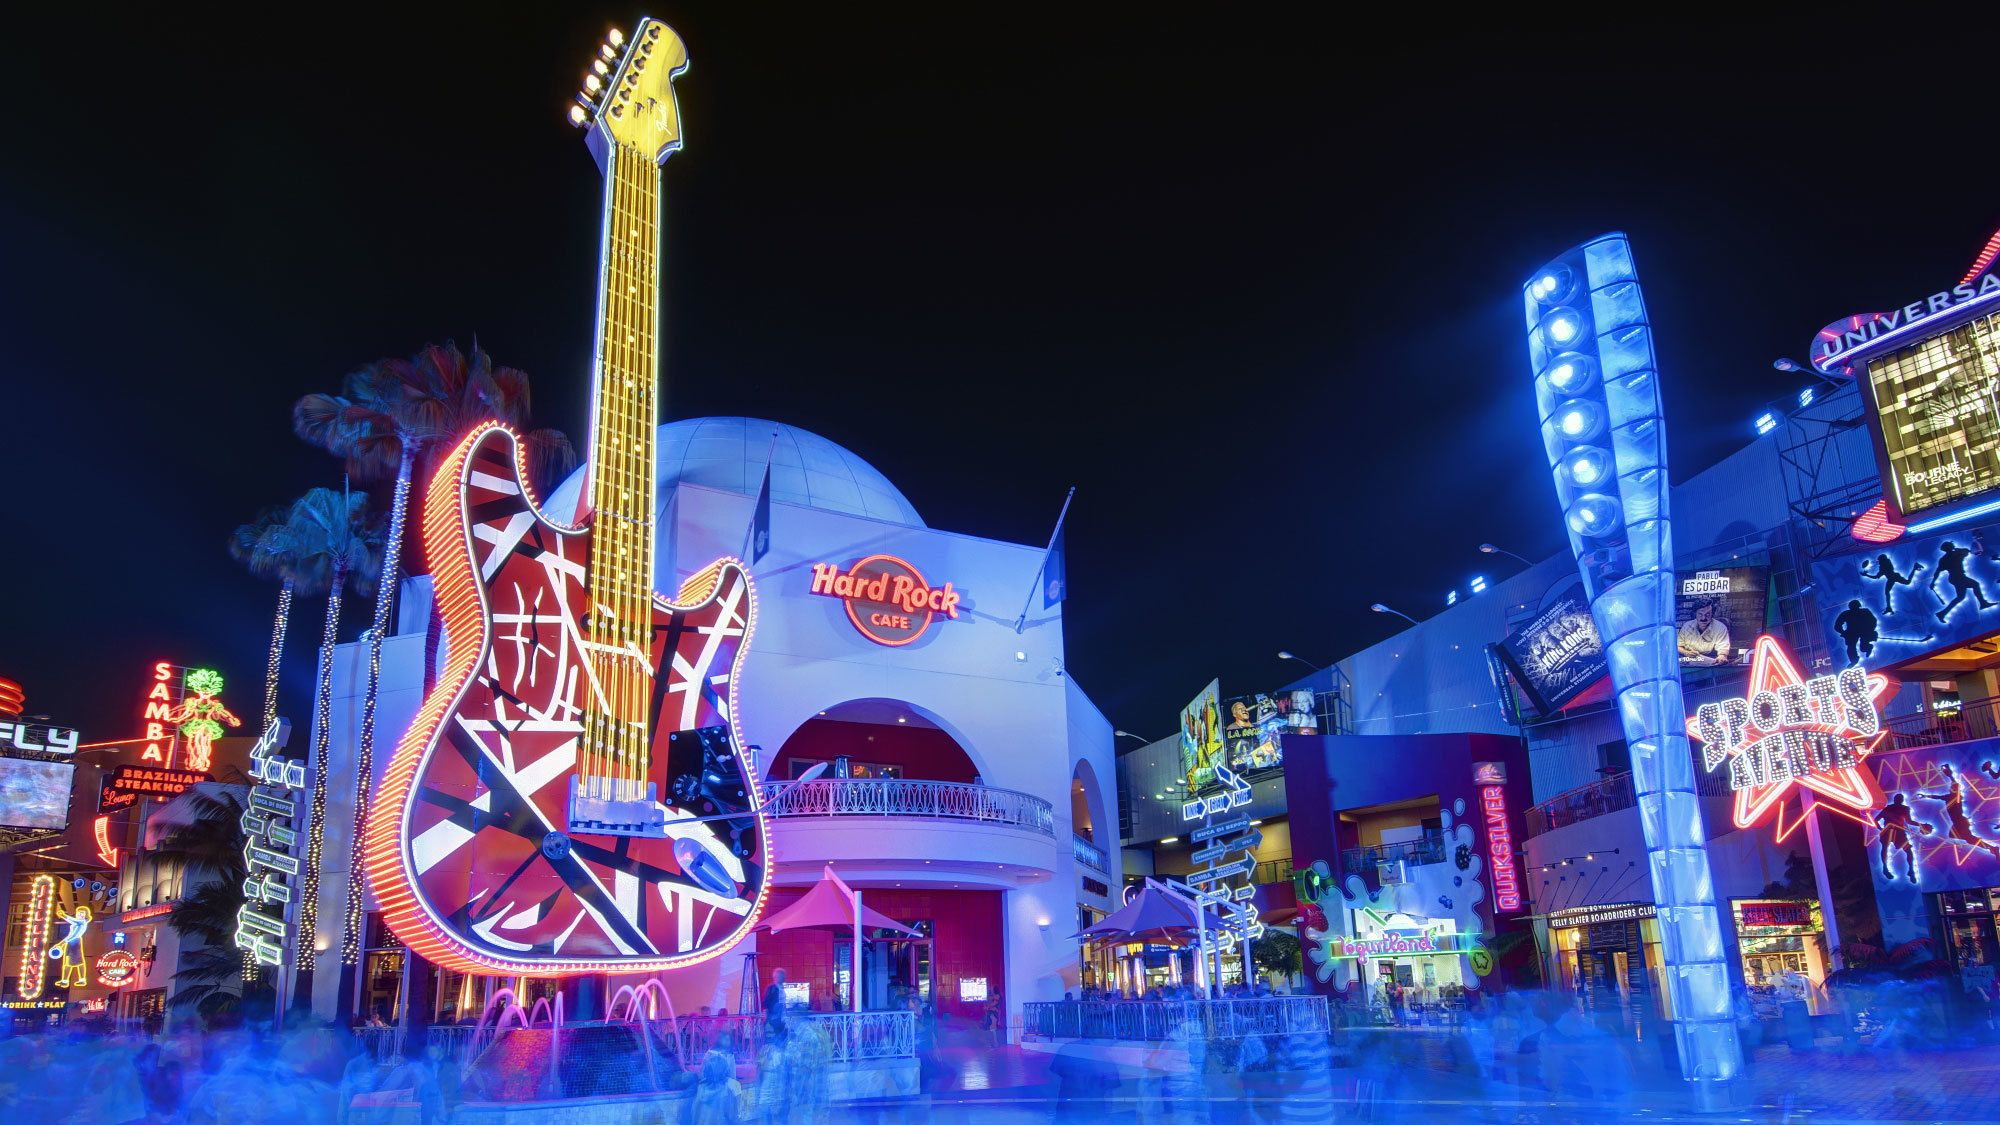 Exterior of the Hard Rock Cafe in Hollywood.